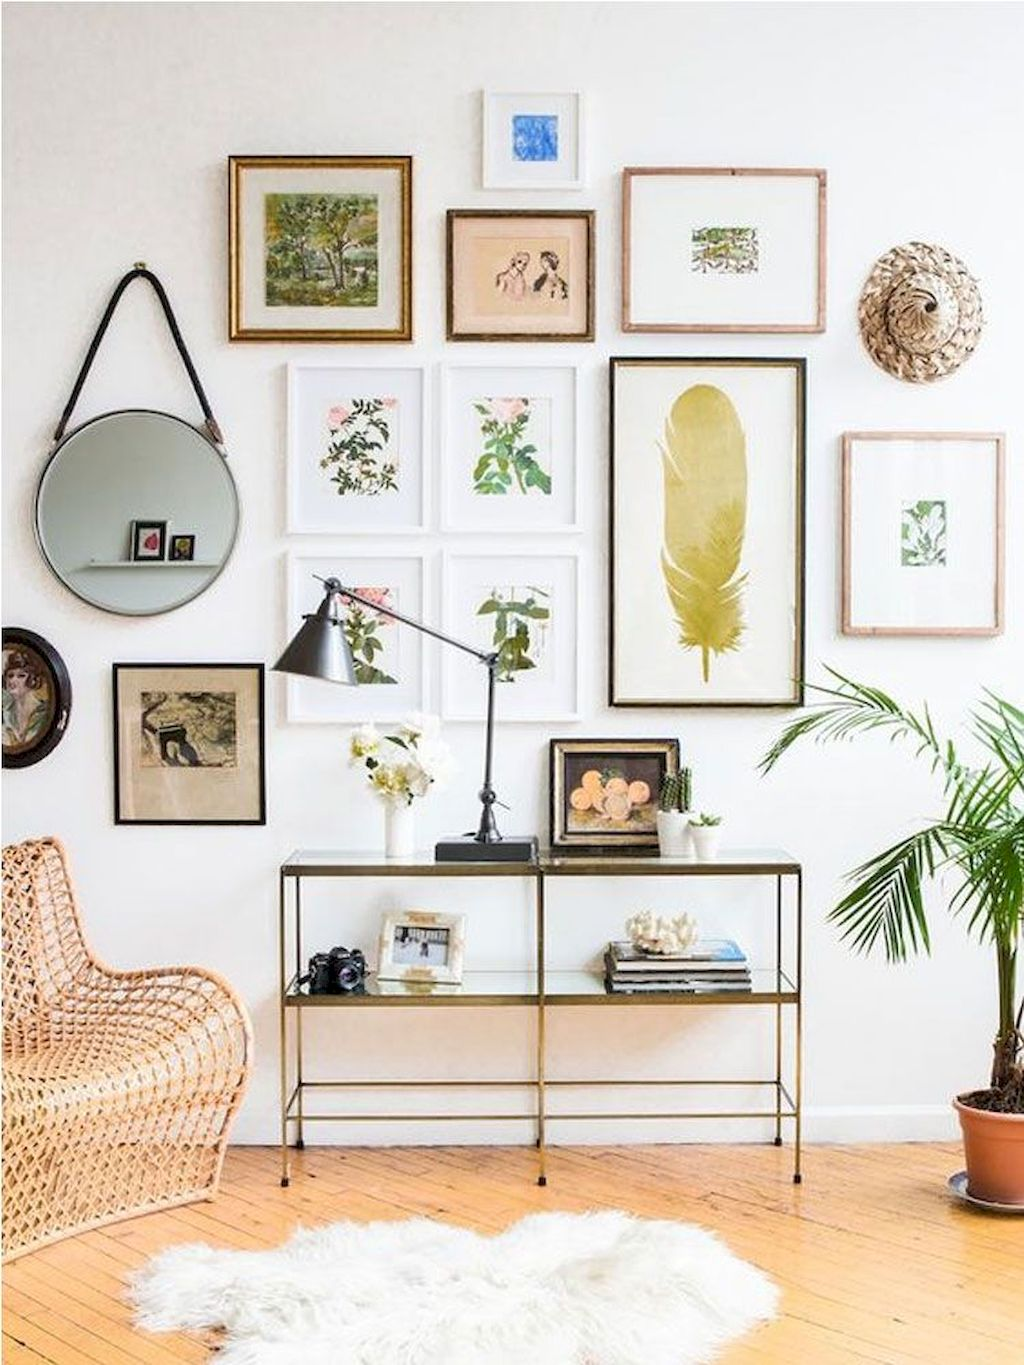 Wall Gallery010